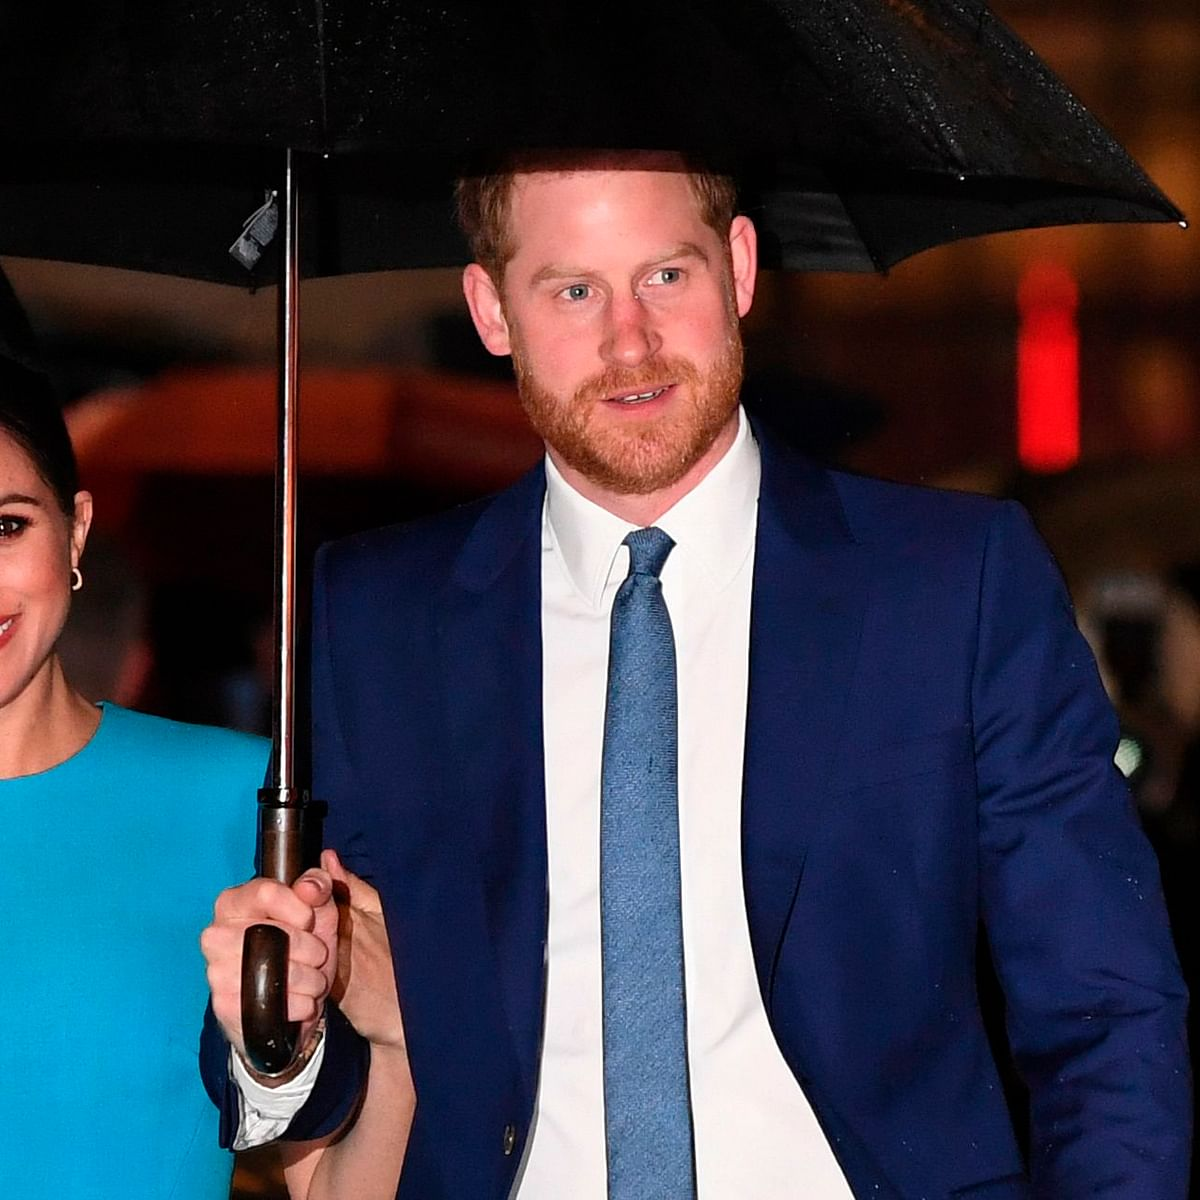 Here's why Meghan Markle will not join Prince Harry at Prince Philip's funeral